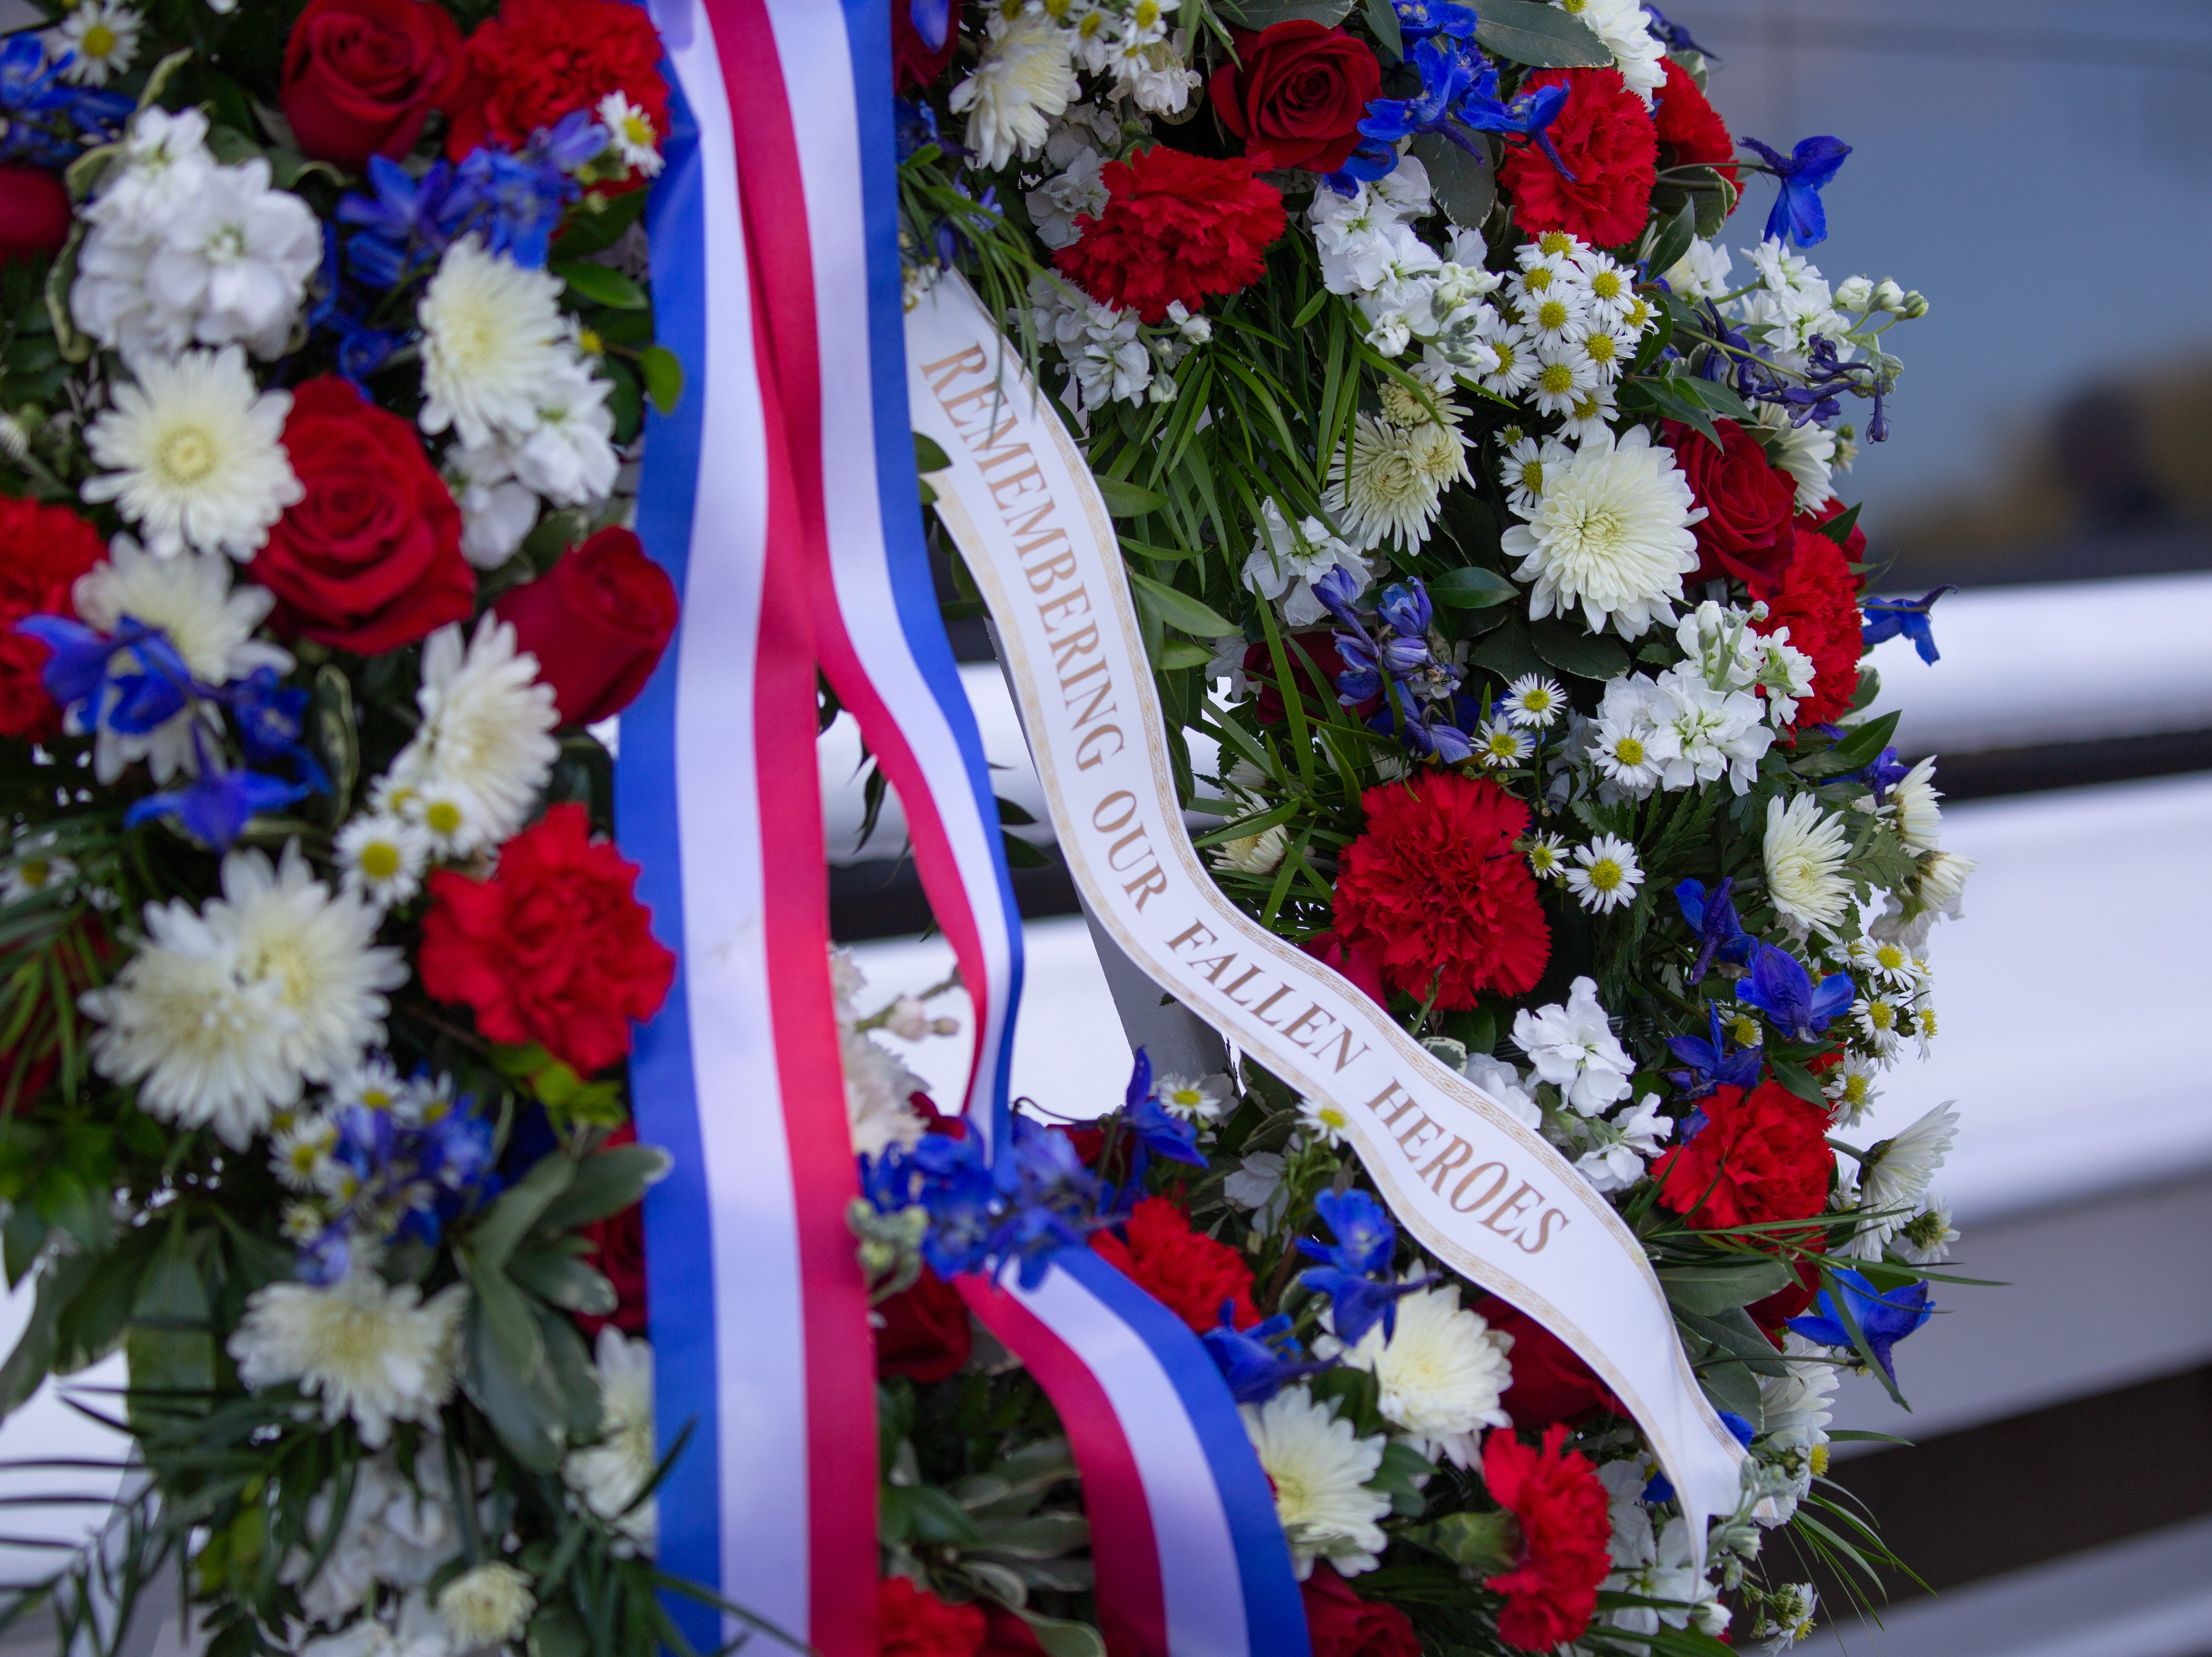 The wreath laid for fallen astronauts at the Kennedy Space Center Visitor Complex's Space Mirror Memorial on Thursday, Feb. 7, 2019.